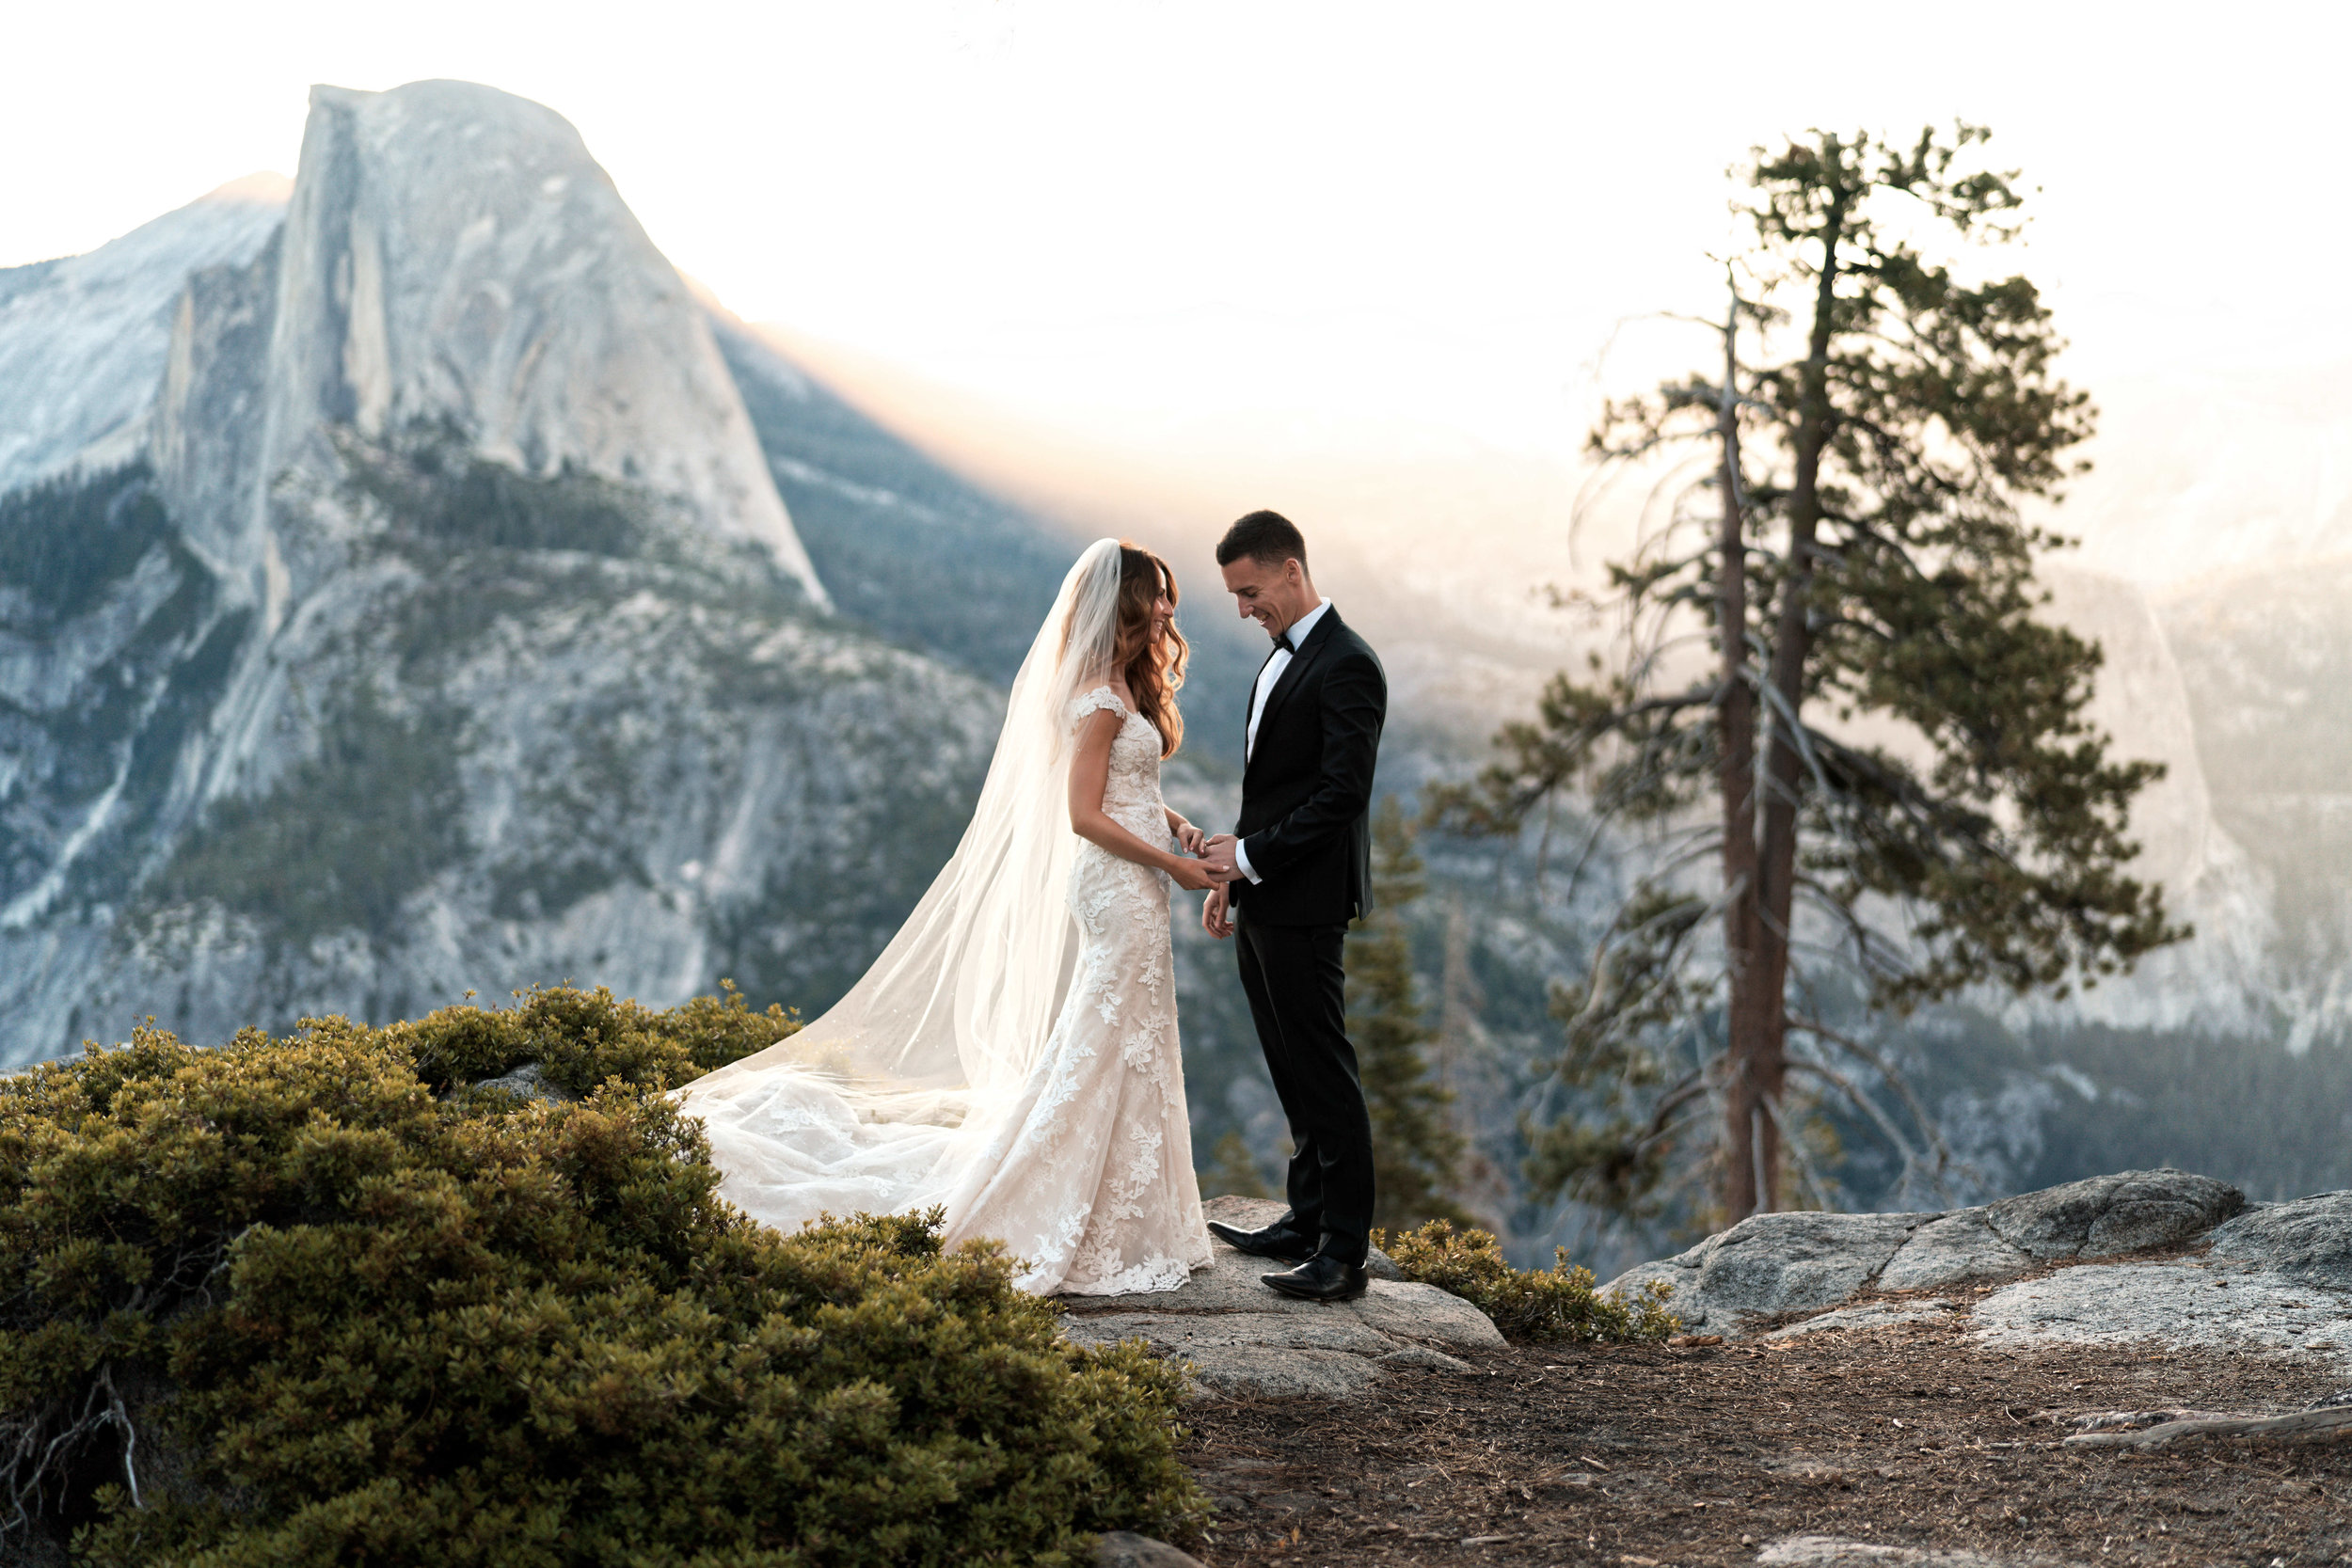 yosemite-adventure-wedding-amyjames (35).jpg